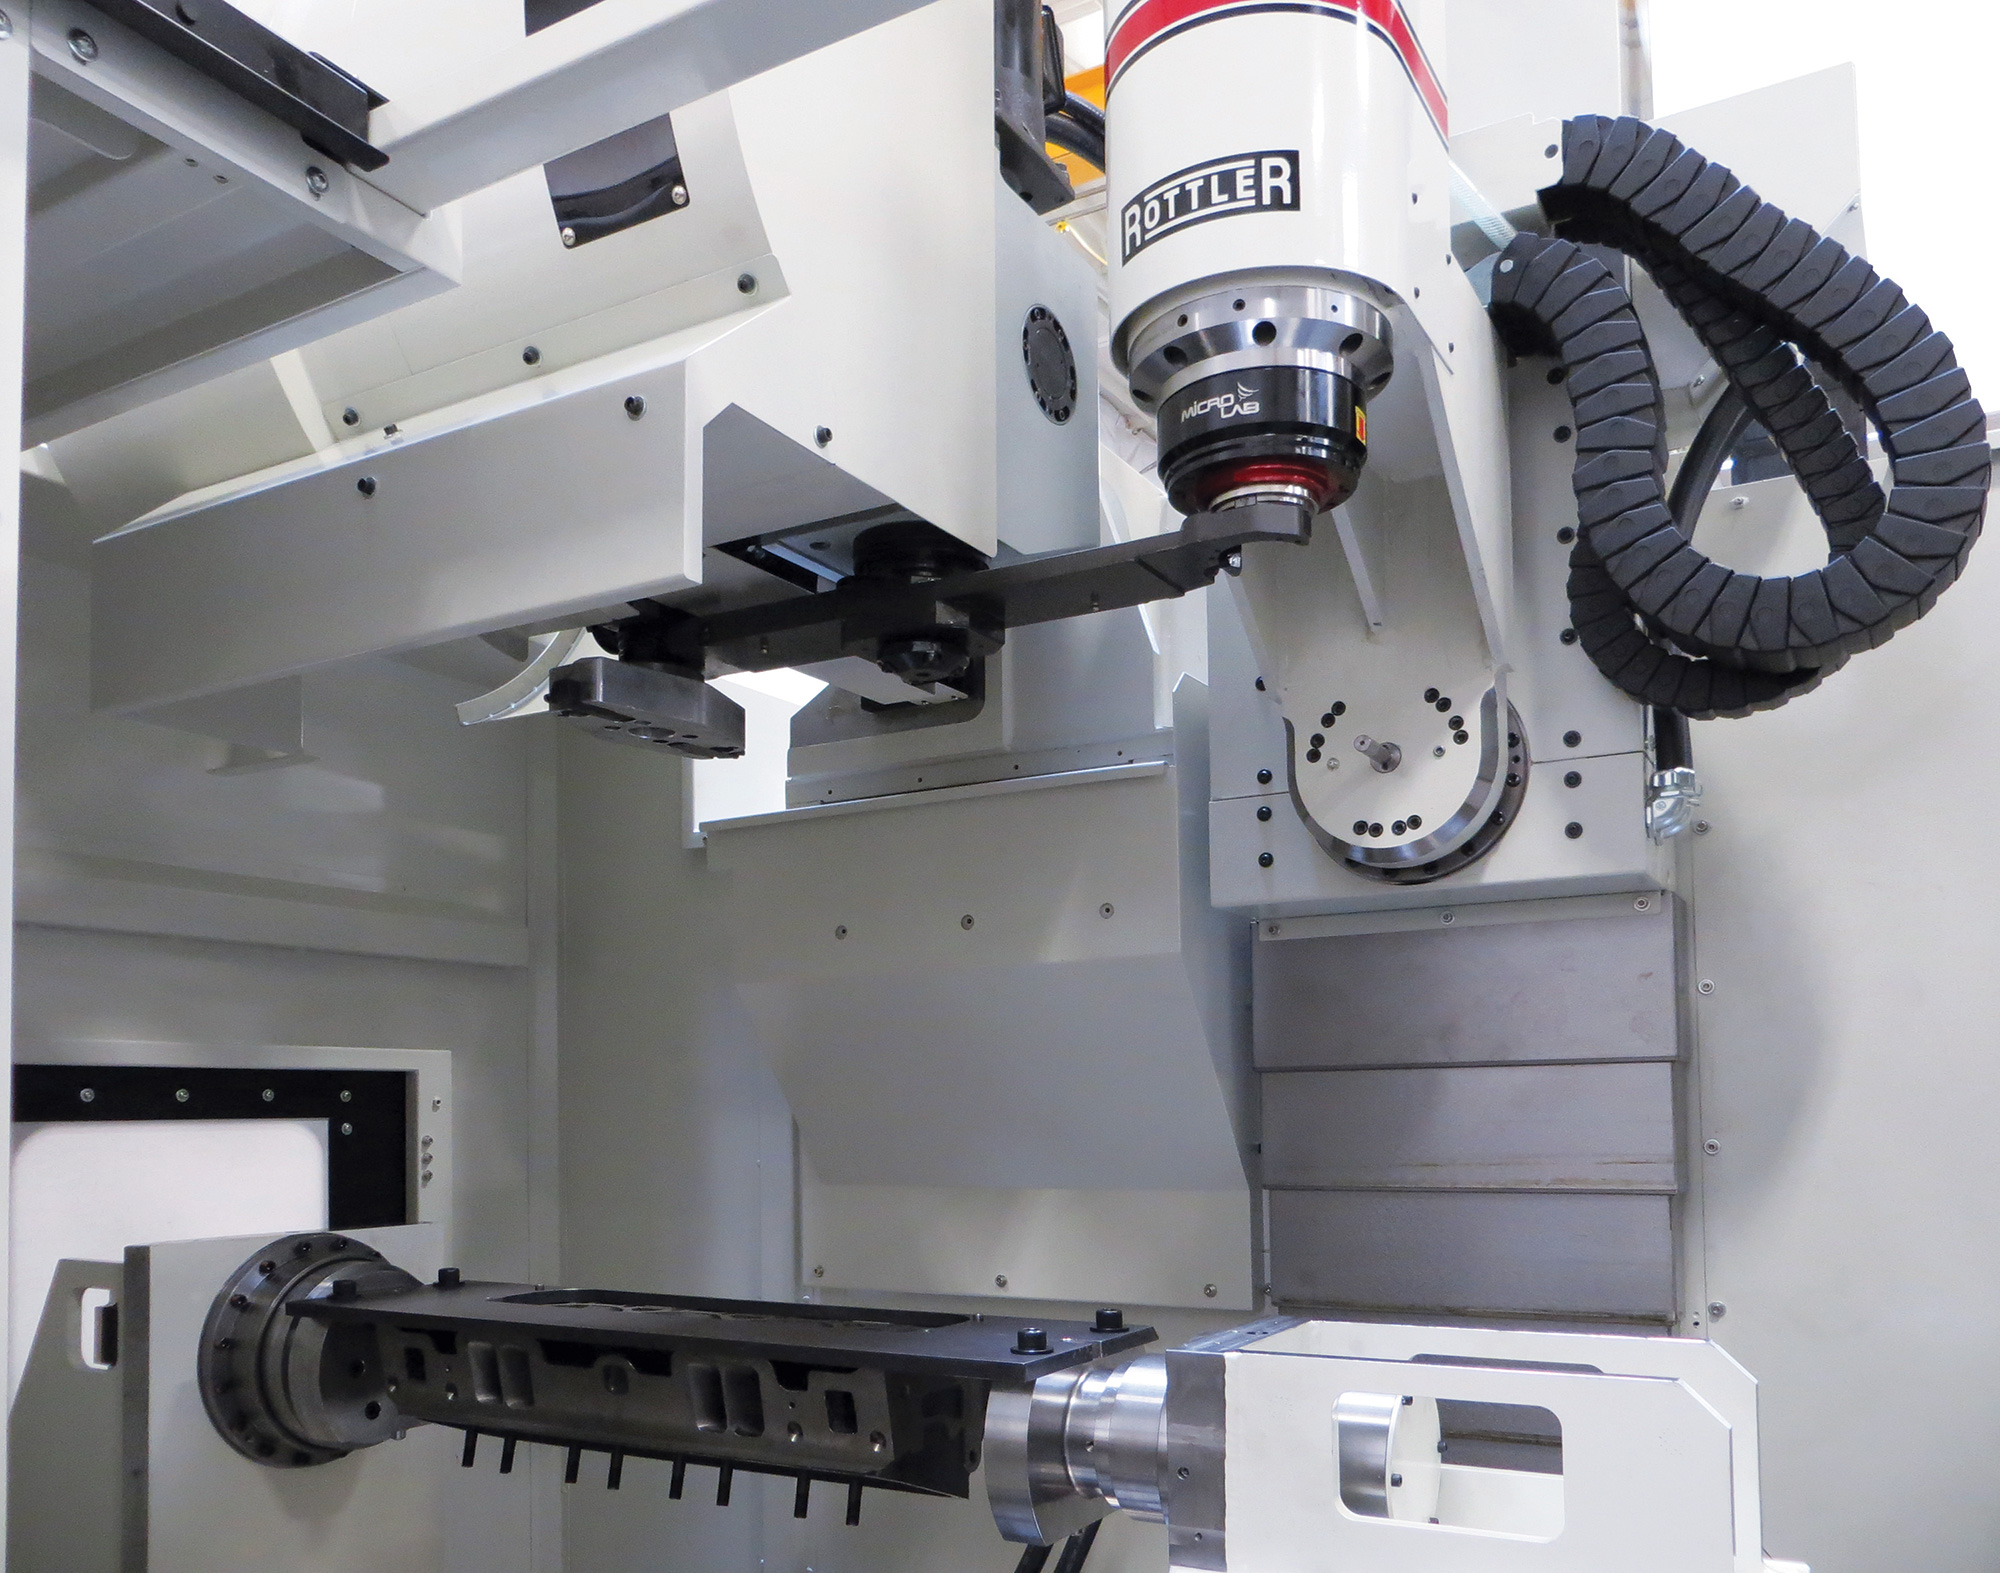 Rottler EM69HP High Power 5-Axis CNC Digitizing, Porting and